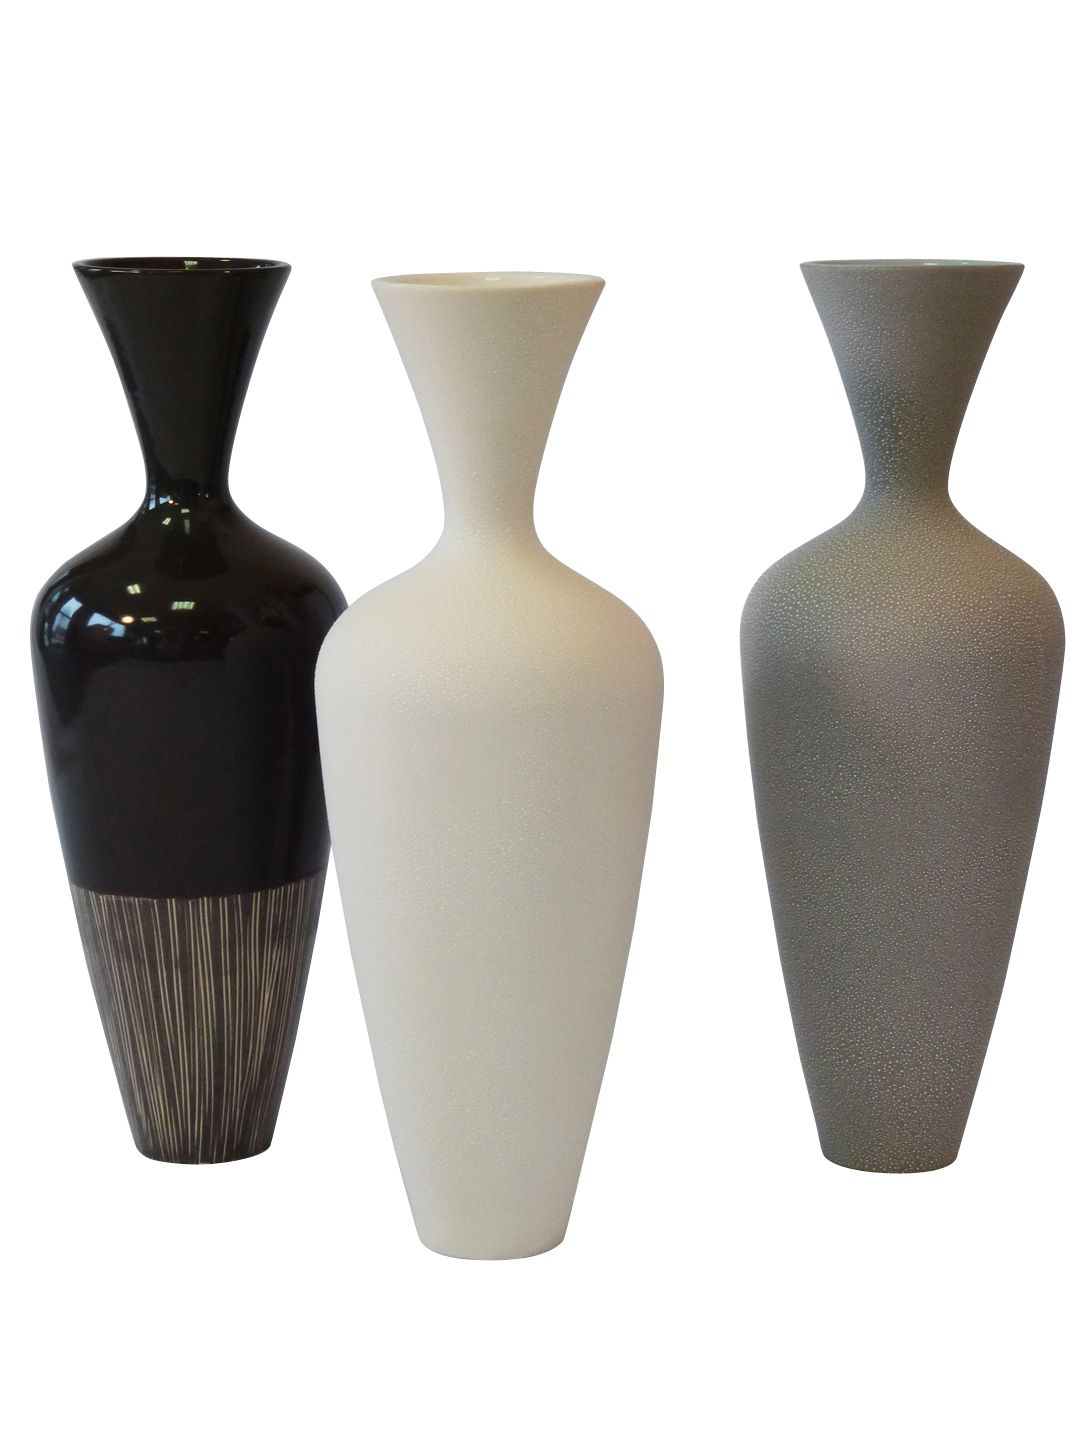 Les Heritiers Vases Ankor Vase Color Decoration Home